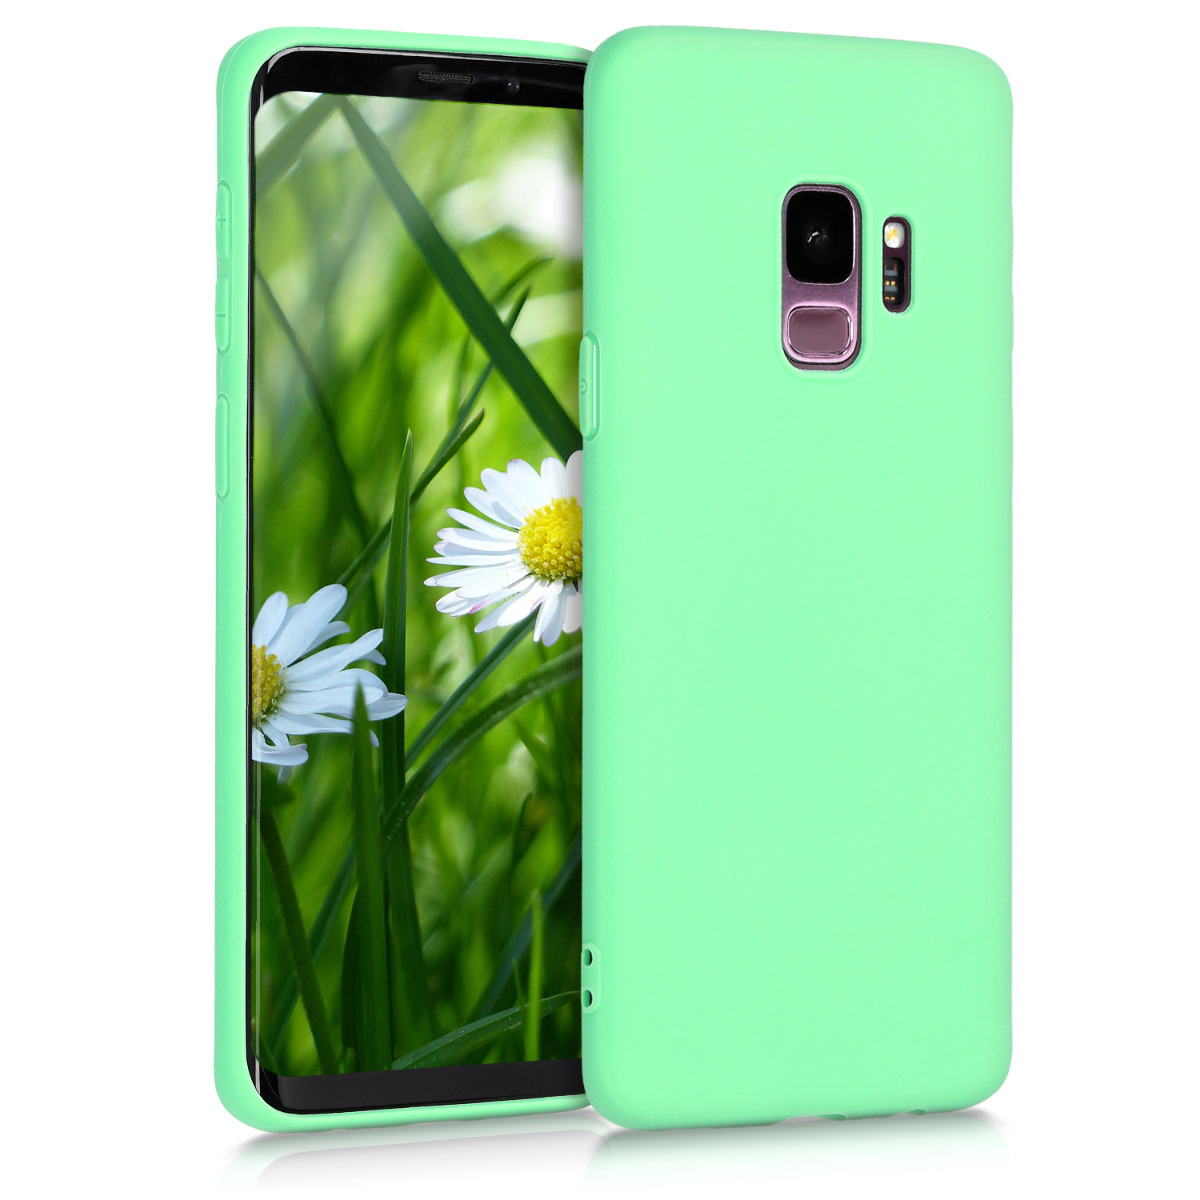 TPU Silikonové pouzdro pro Samsung Galaxy S9 - Soft Flexible Protective Phone Cover - Peppermint Green